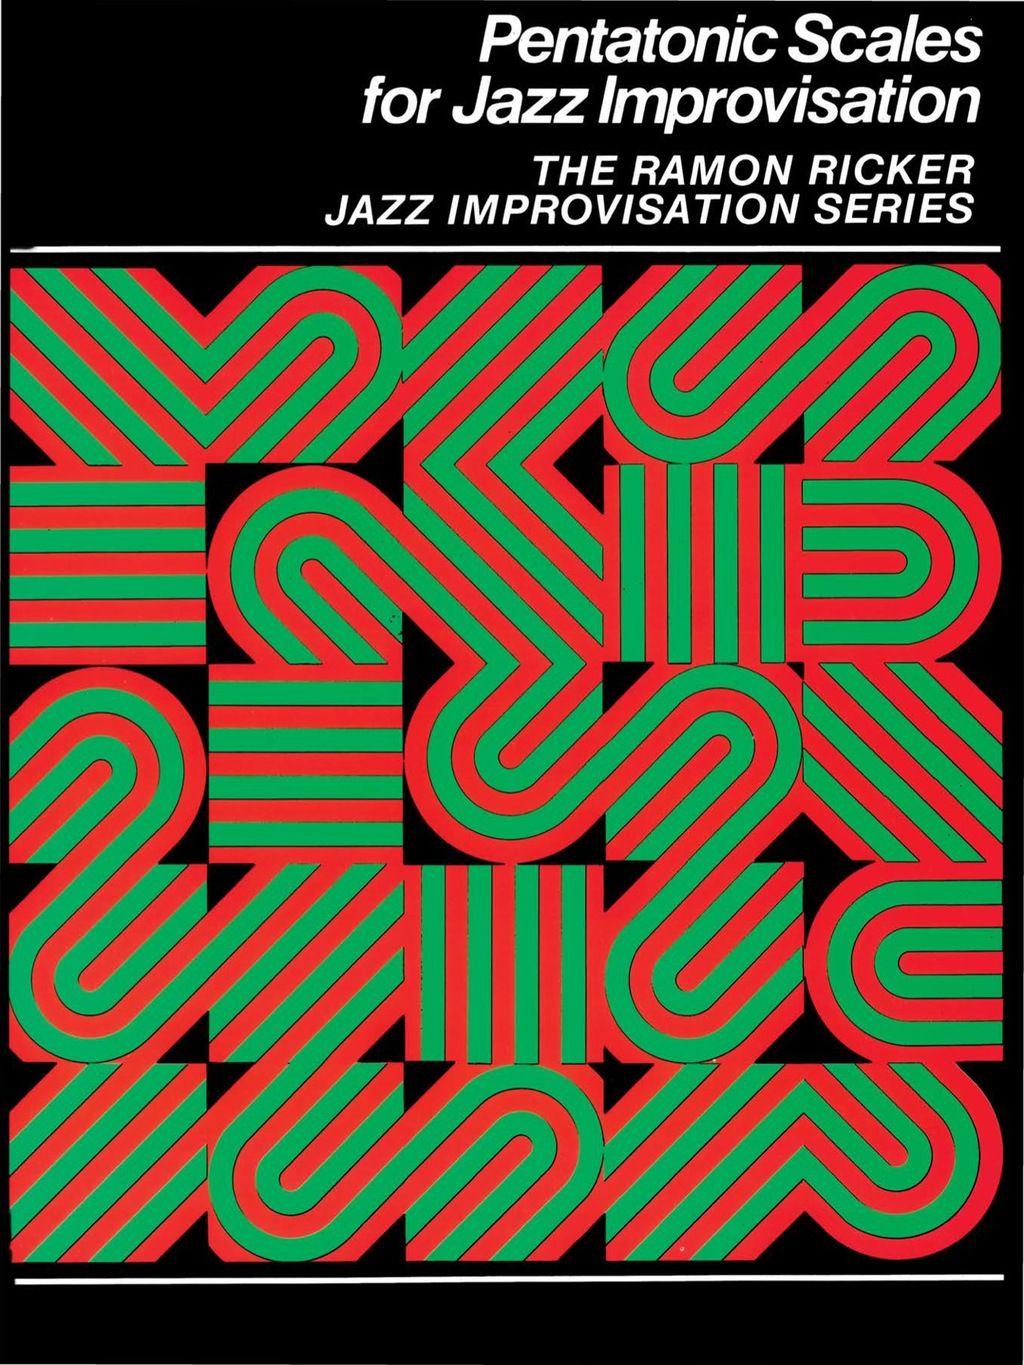 Pentatonic Scales For Jazz Improvisation Ebook Improvisation Jazz Ebook